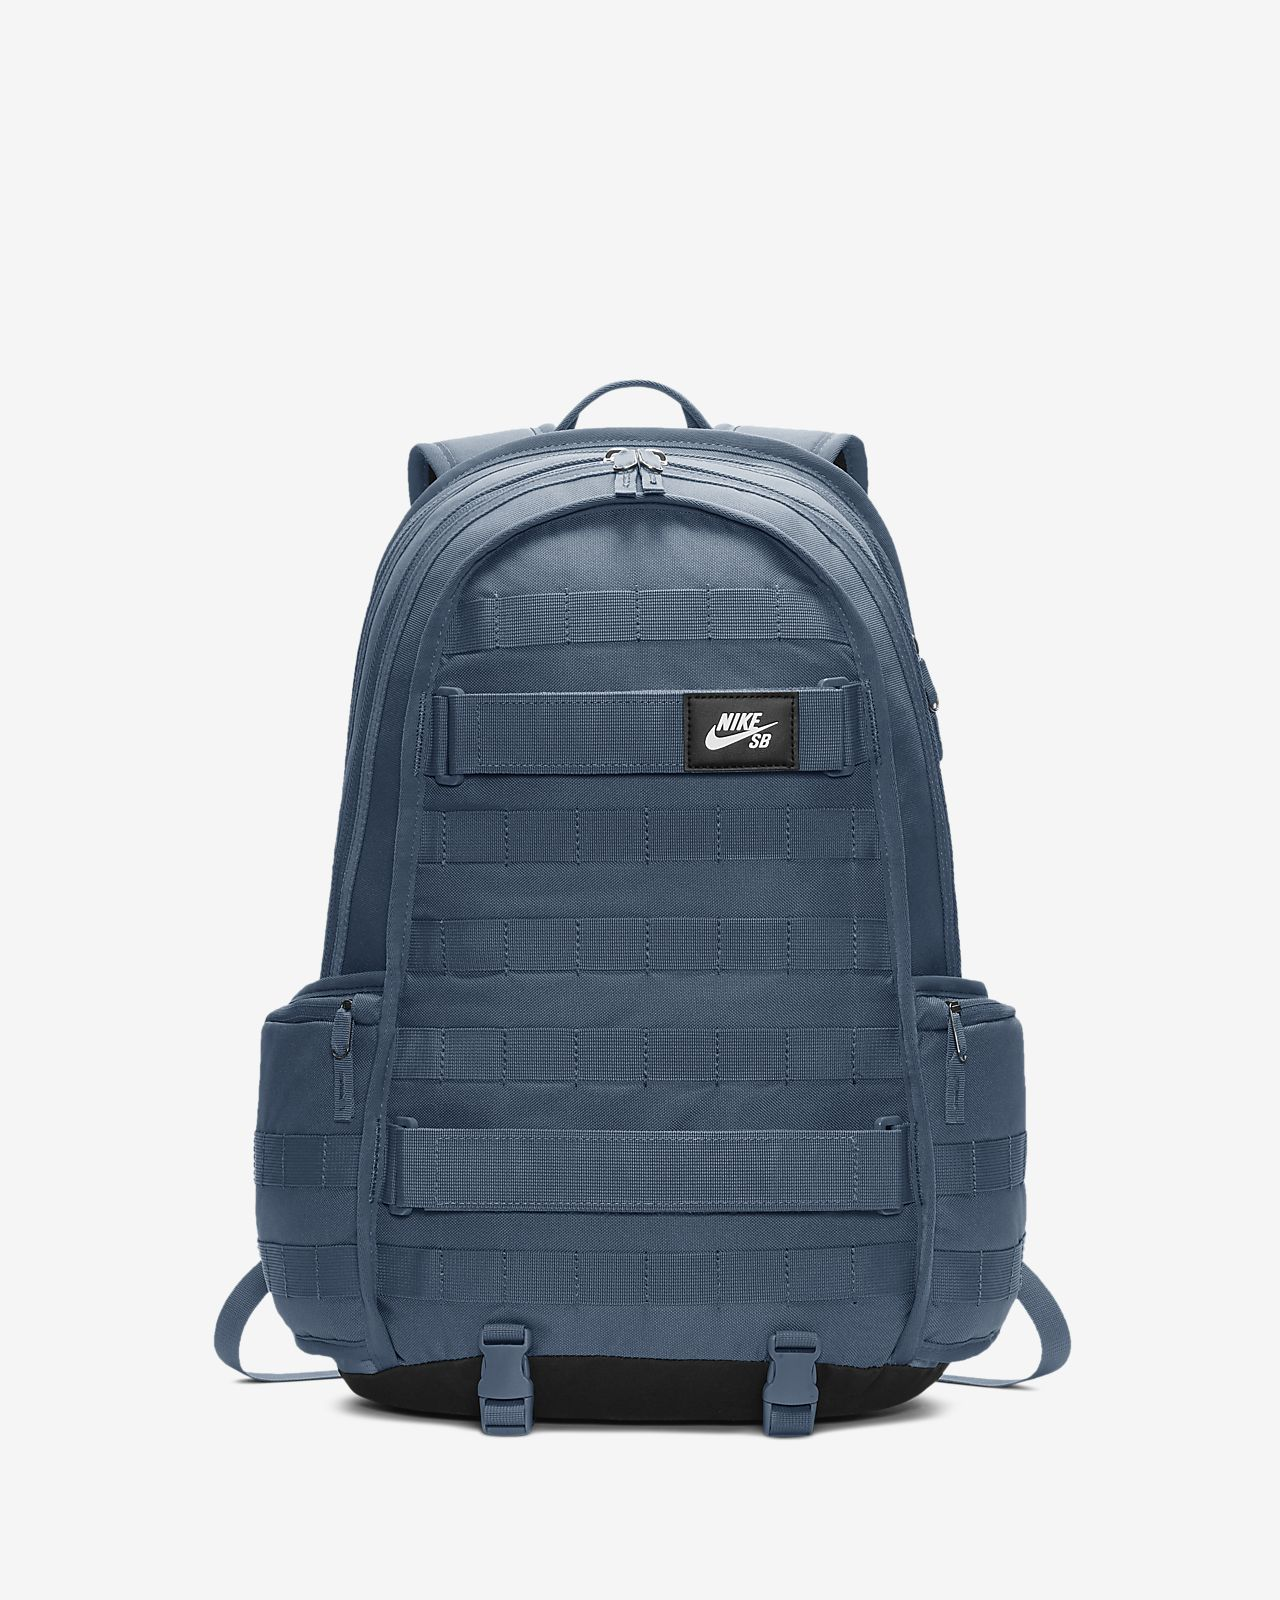 8b08f078a0b2 Low Resolution Nike SB RPM Skateboarding Backpack Nike SB RPM Skateboarding  Backpack